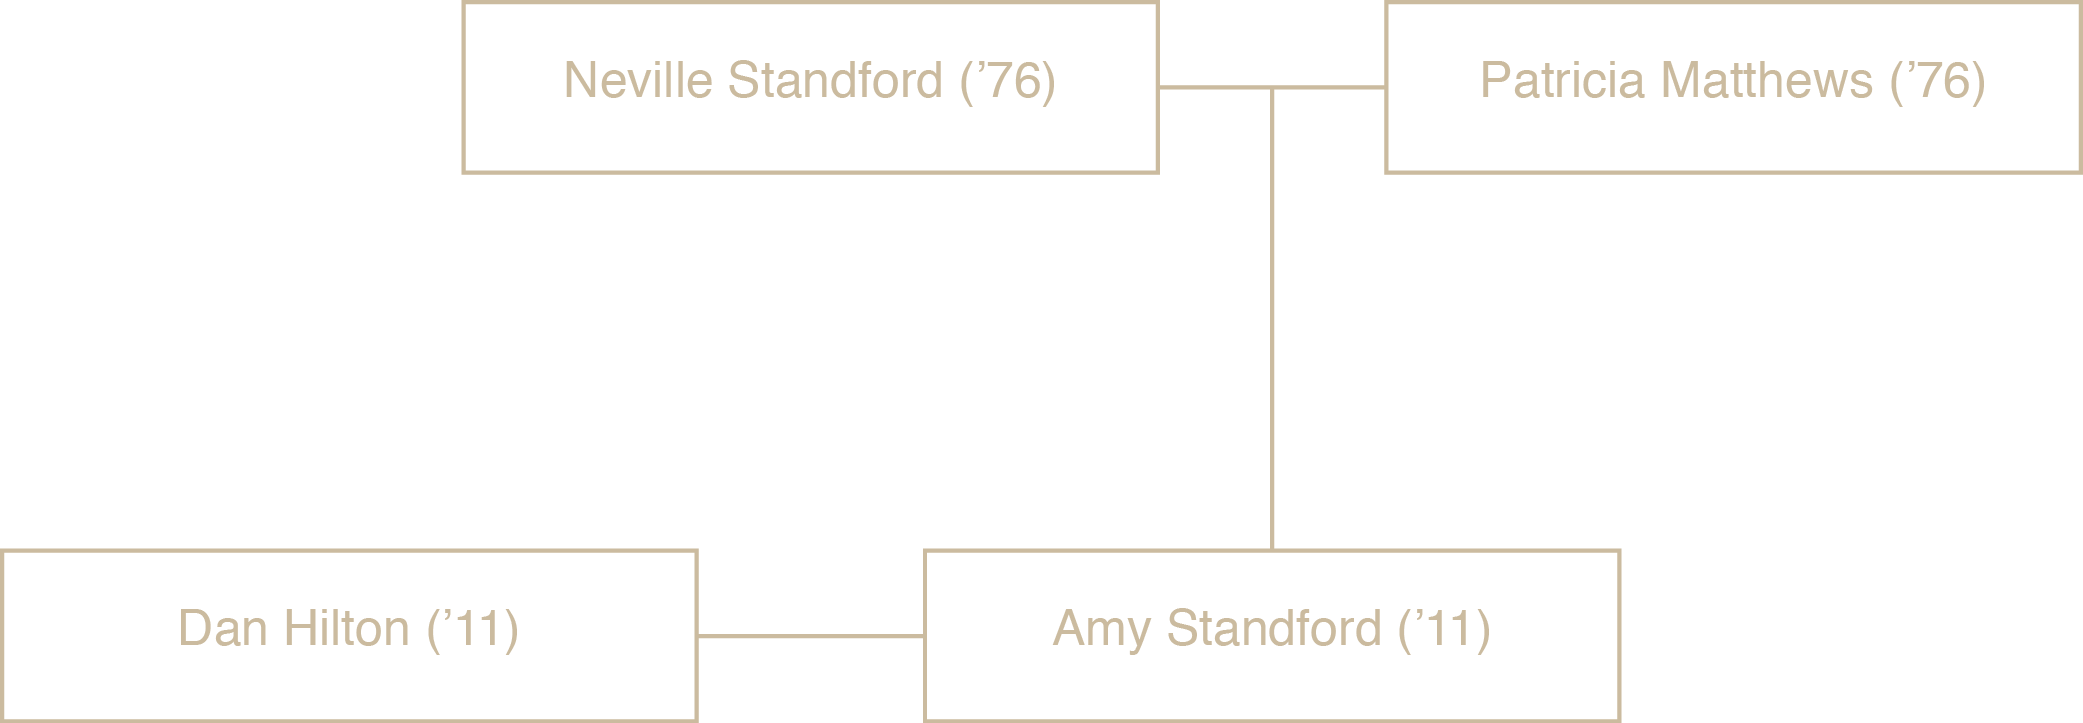 Standford family tree